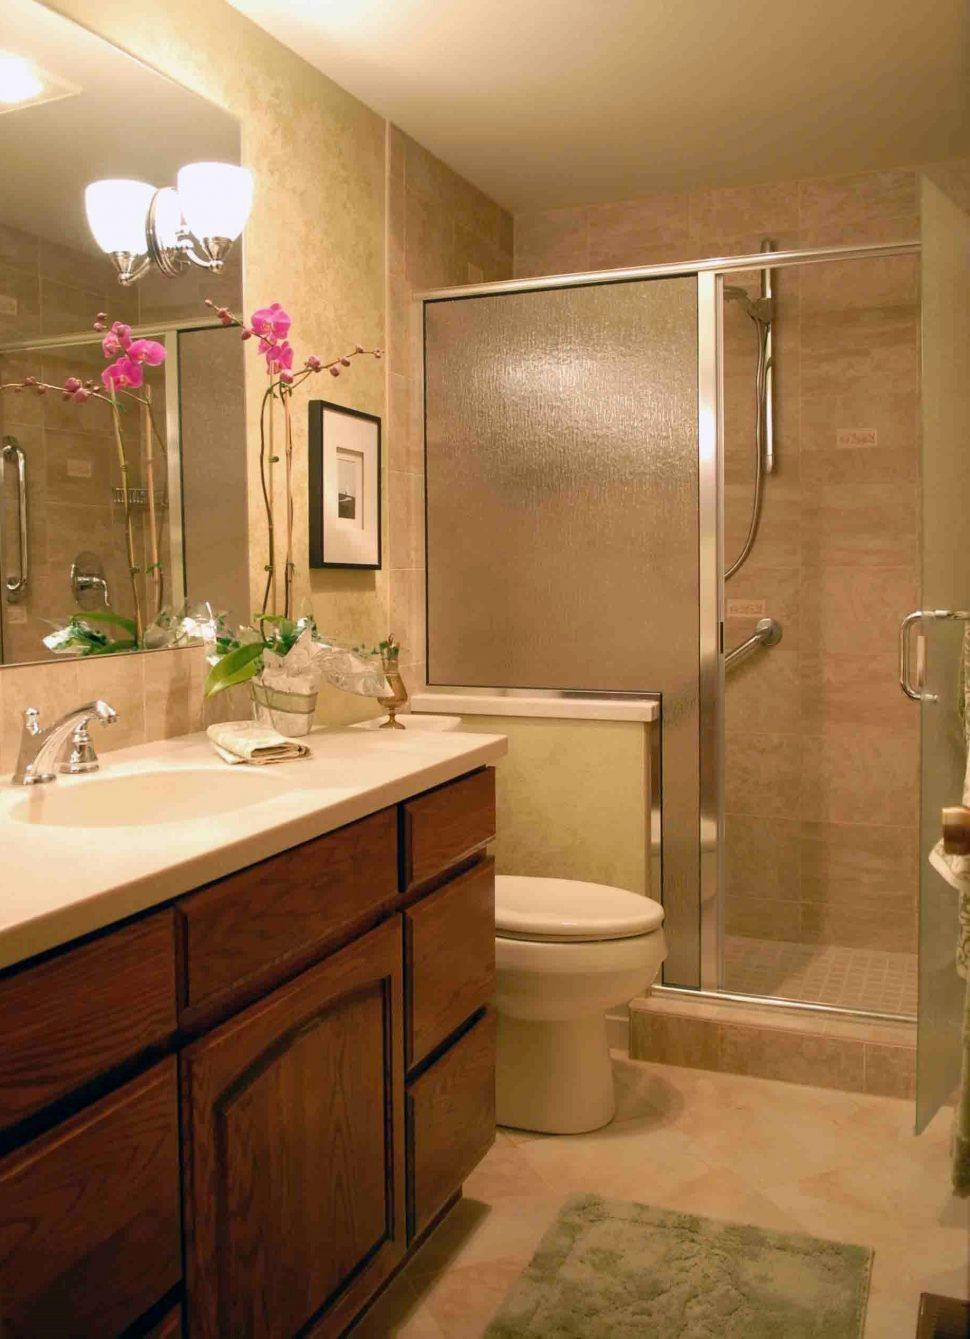 100 Small Bathroom Walk In Shower Designs  Favorite Interior Unique Small Bathroom Walk In Shower Designs Decorating Inspiration